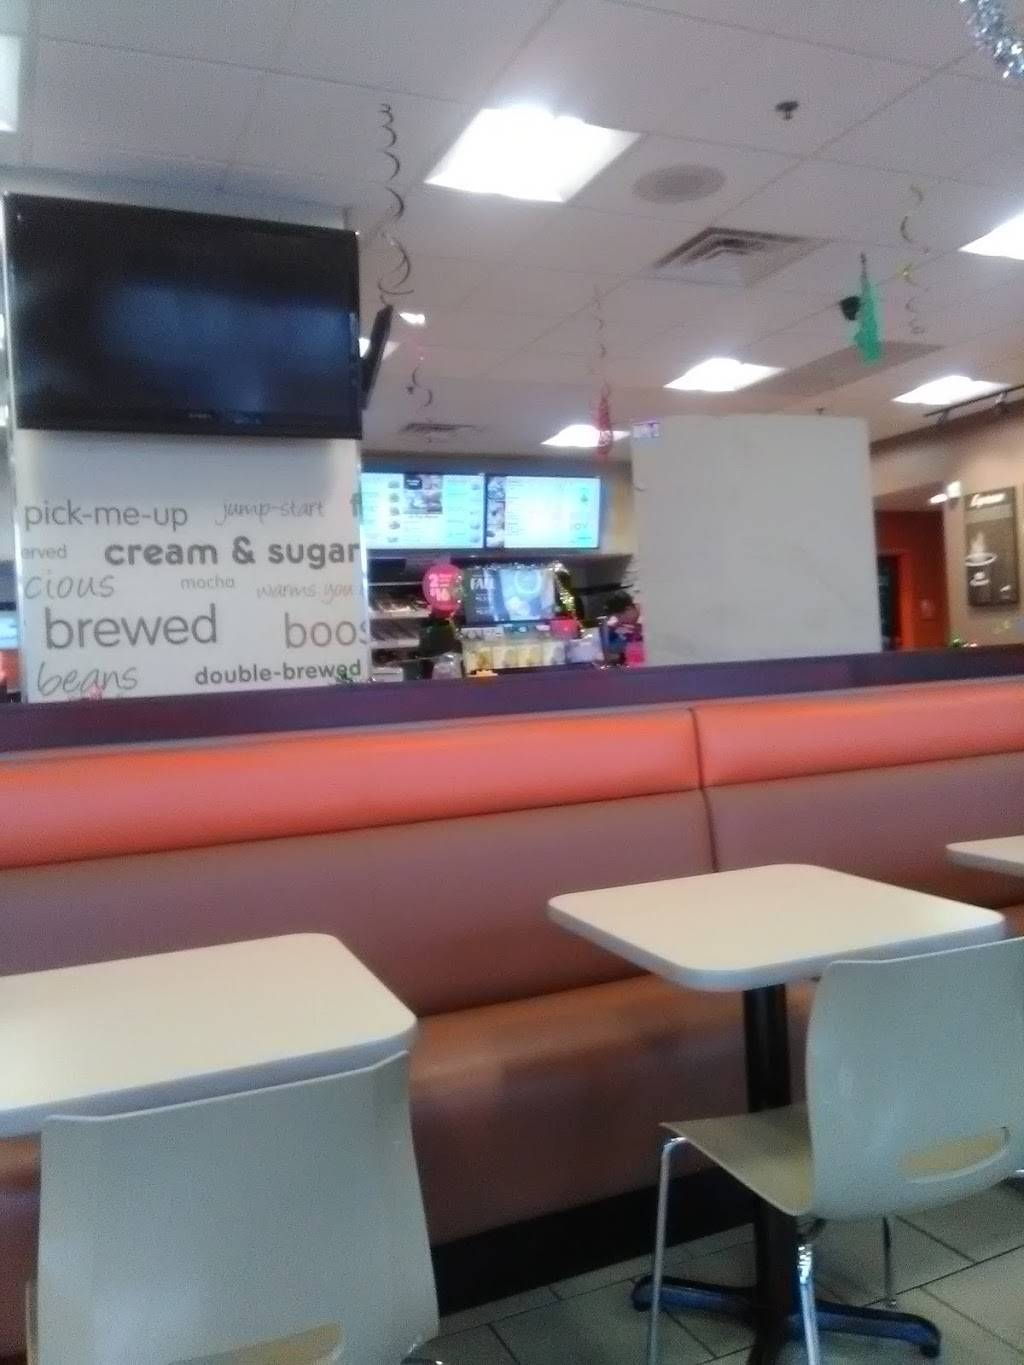 Dunkin Donuts   cafe   7086 183rd St, Tinley Park, IL 60477, USA   7084440800 OR +1 708-444-0800